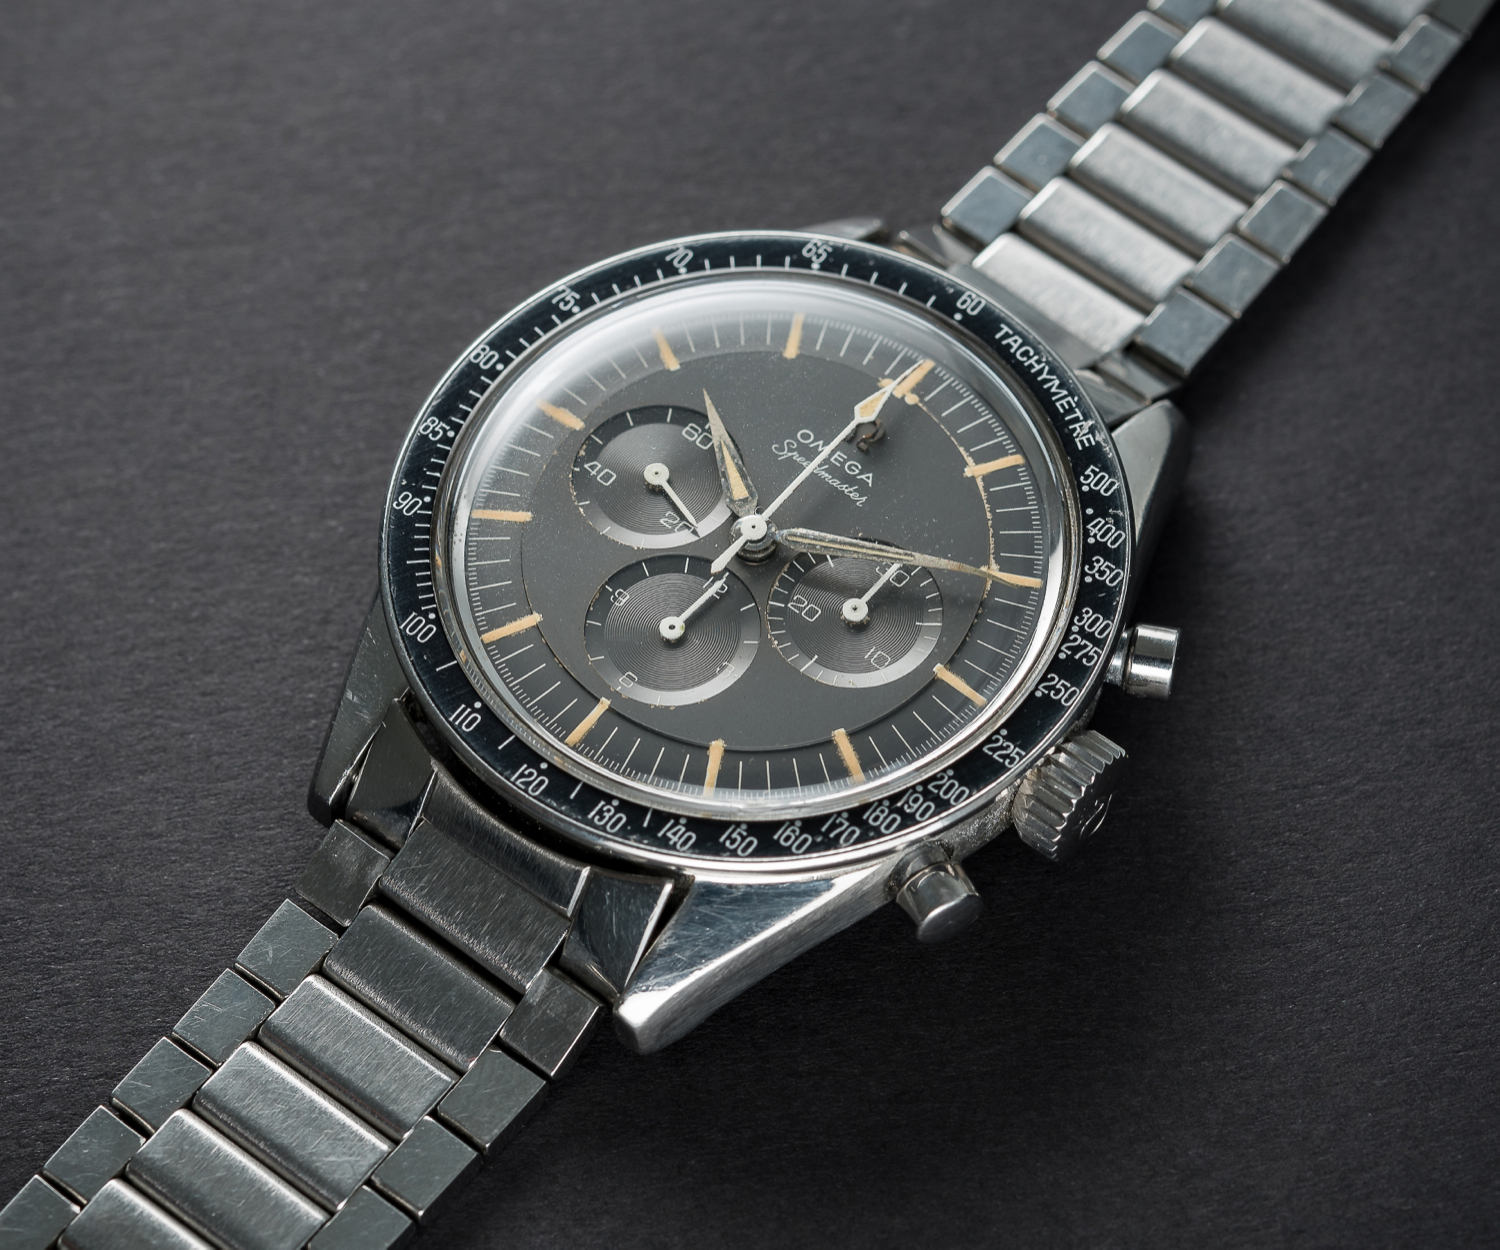 "AN EXTREMELY RARE GENTLEMAN'S STAINLESS STEEL OMEGA SPEEDMASTER ""SPECIAL PROJECTS"" CHRONOGRAPH - Image 2 of 14"